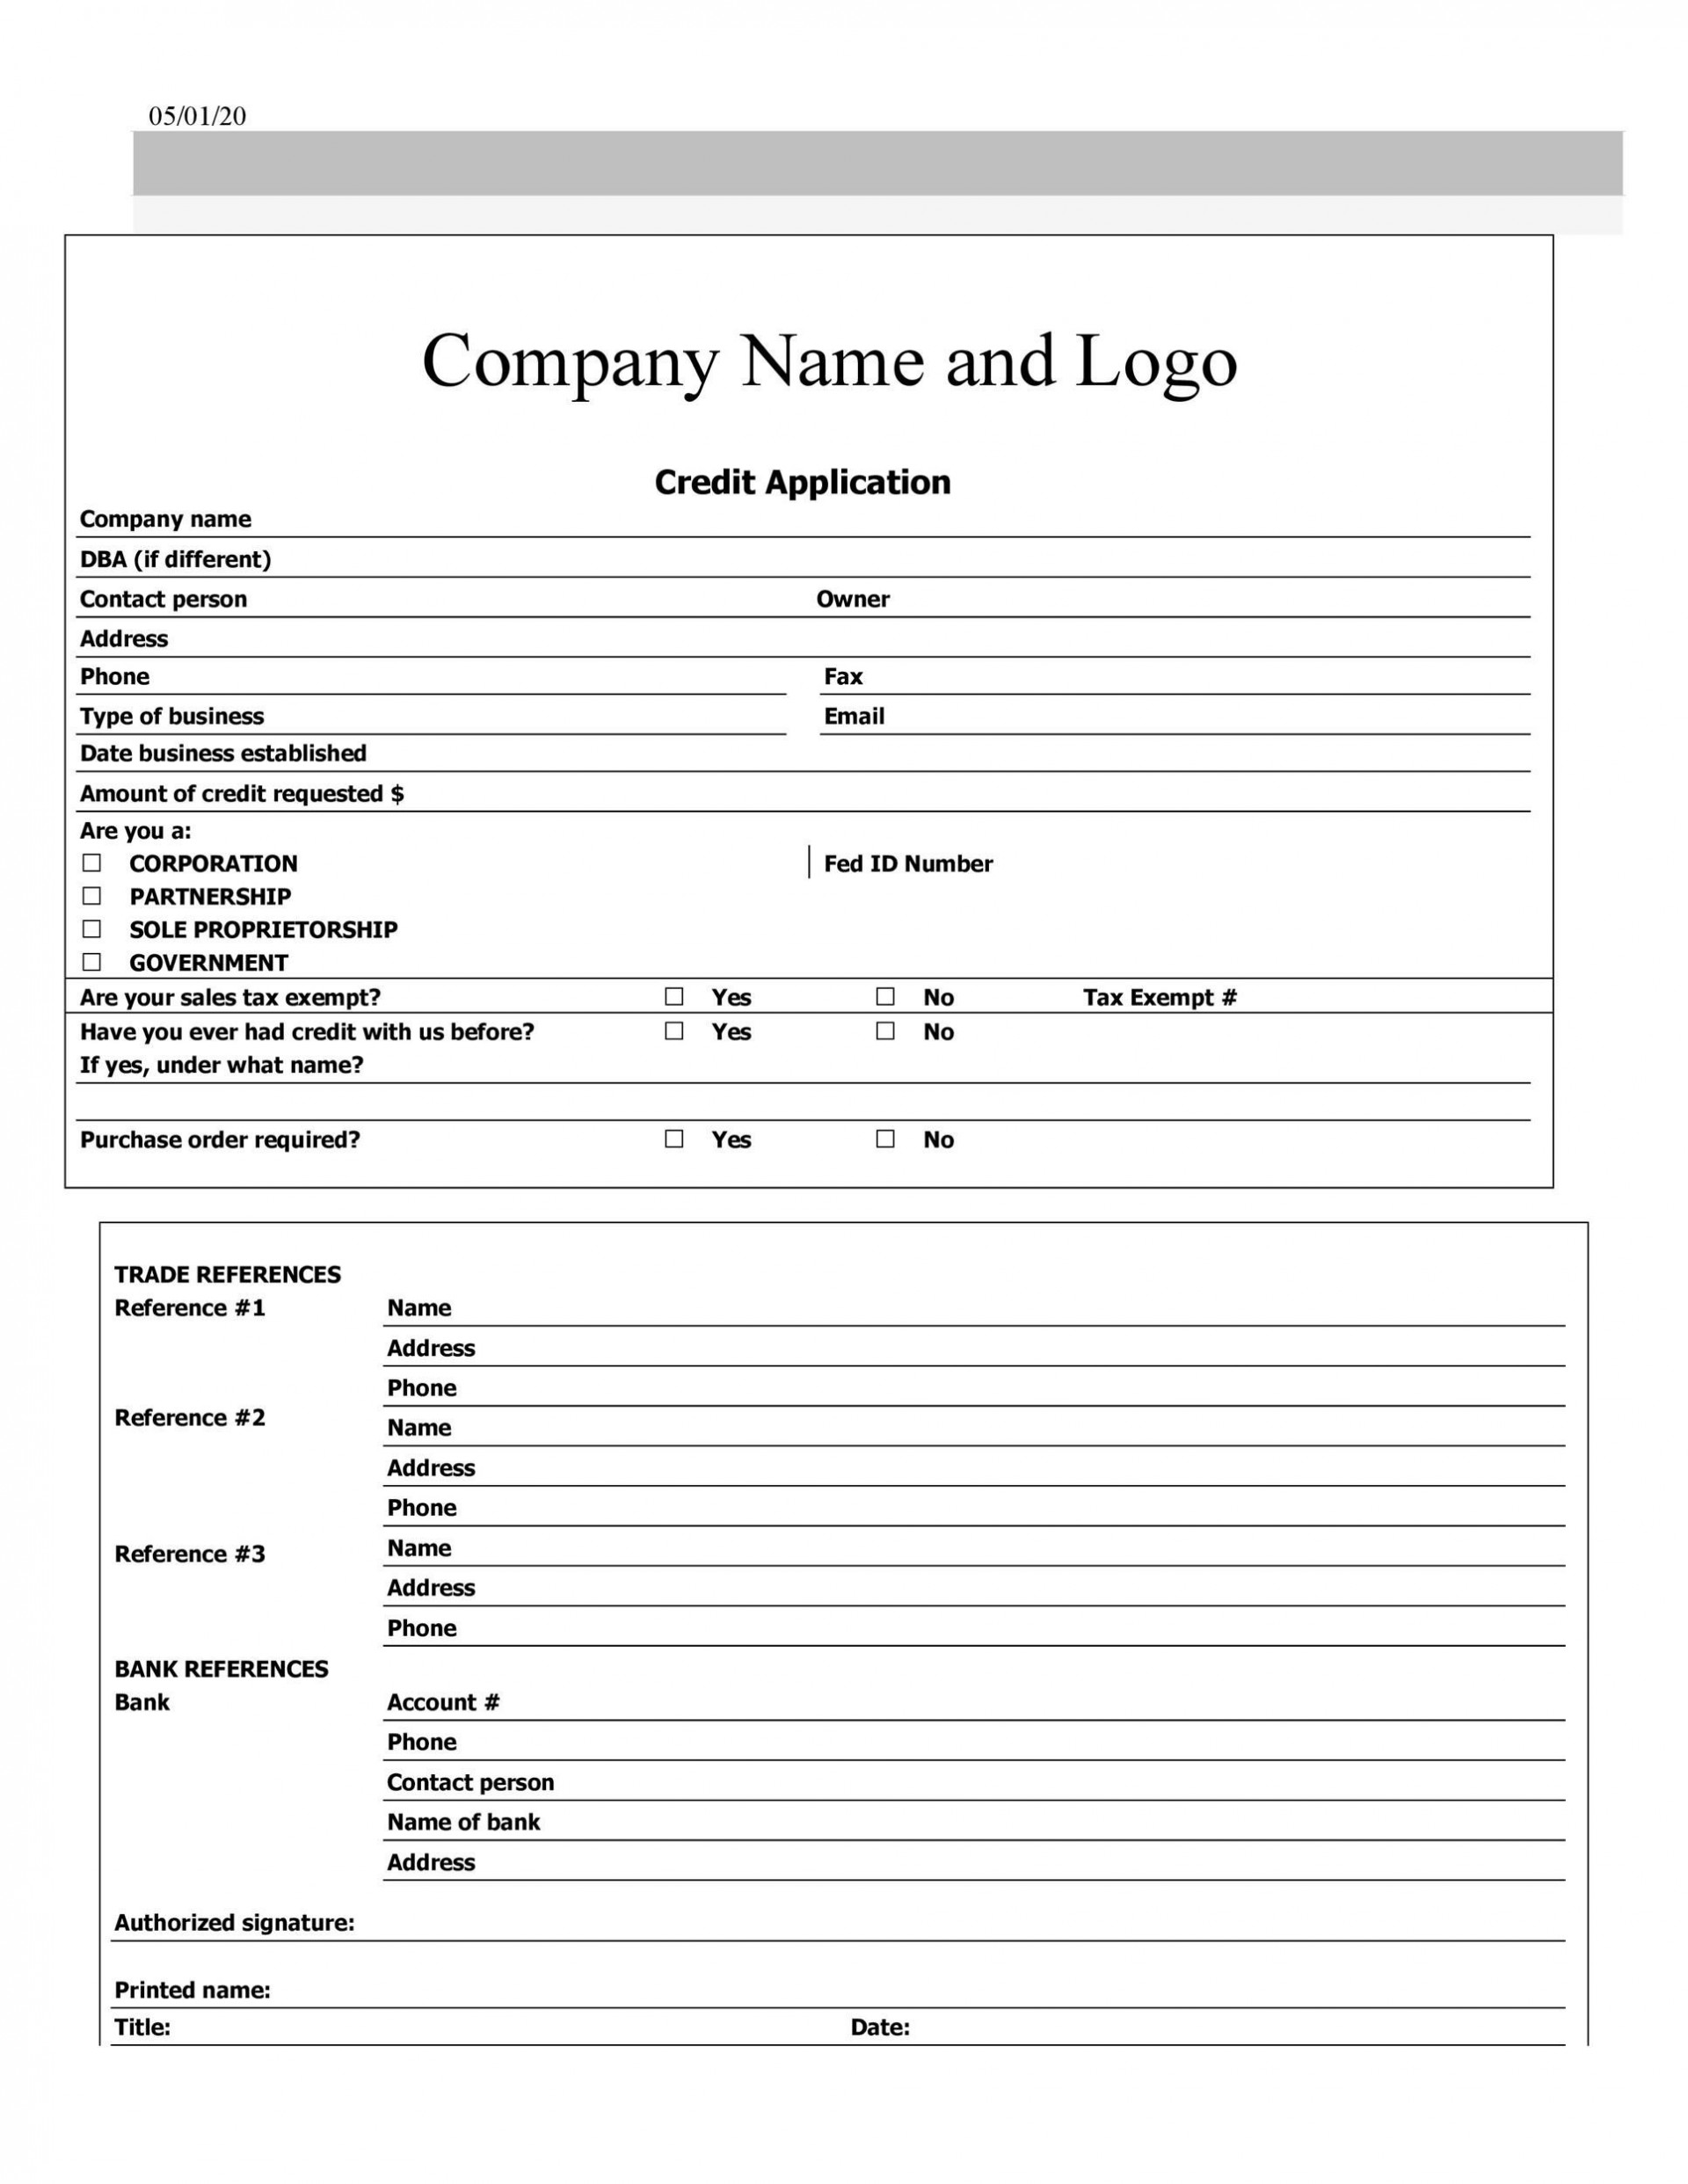 005 Impressive New Customer Account Form Template Image  Setup Word Free1920